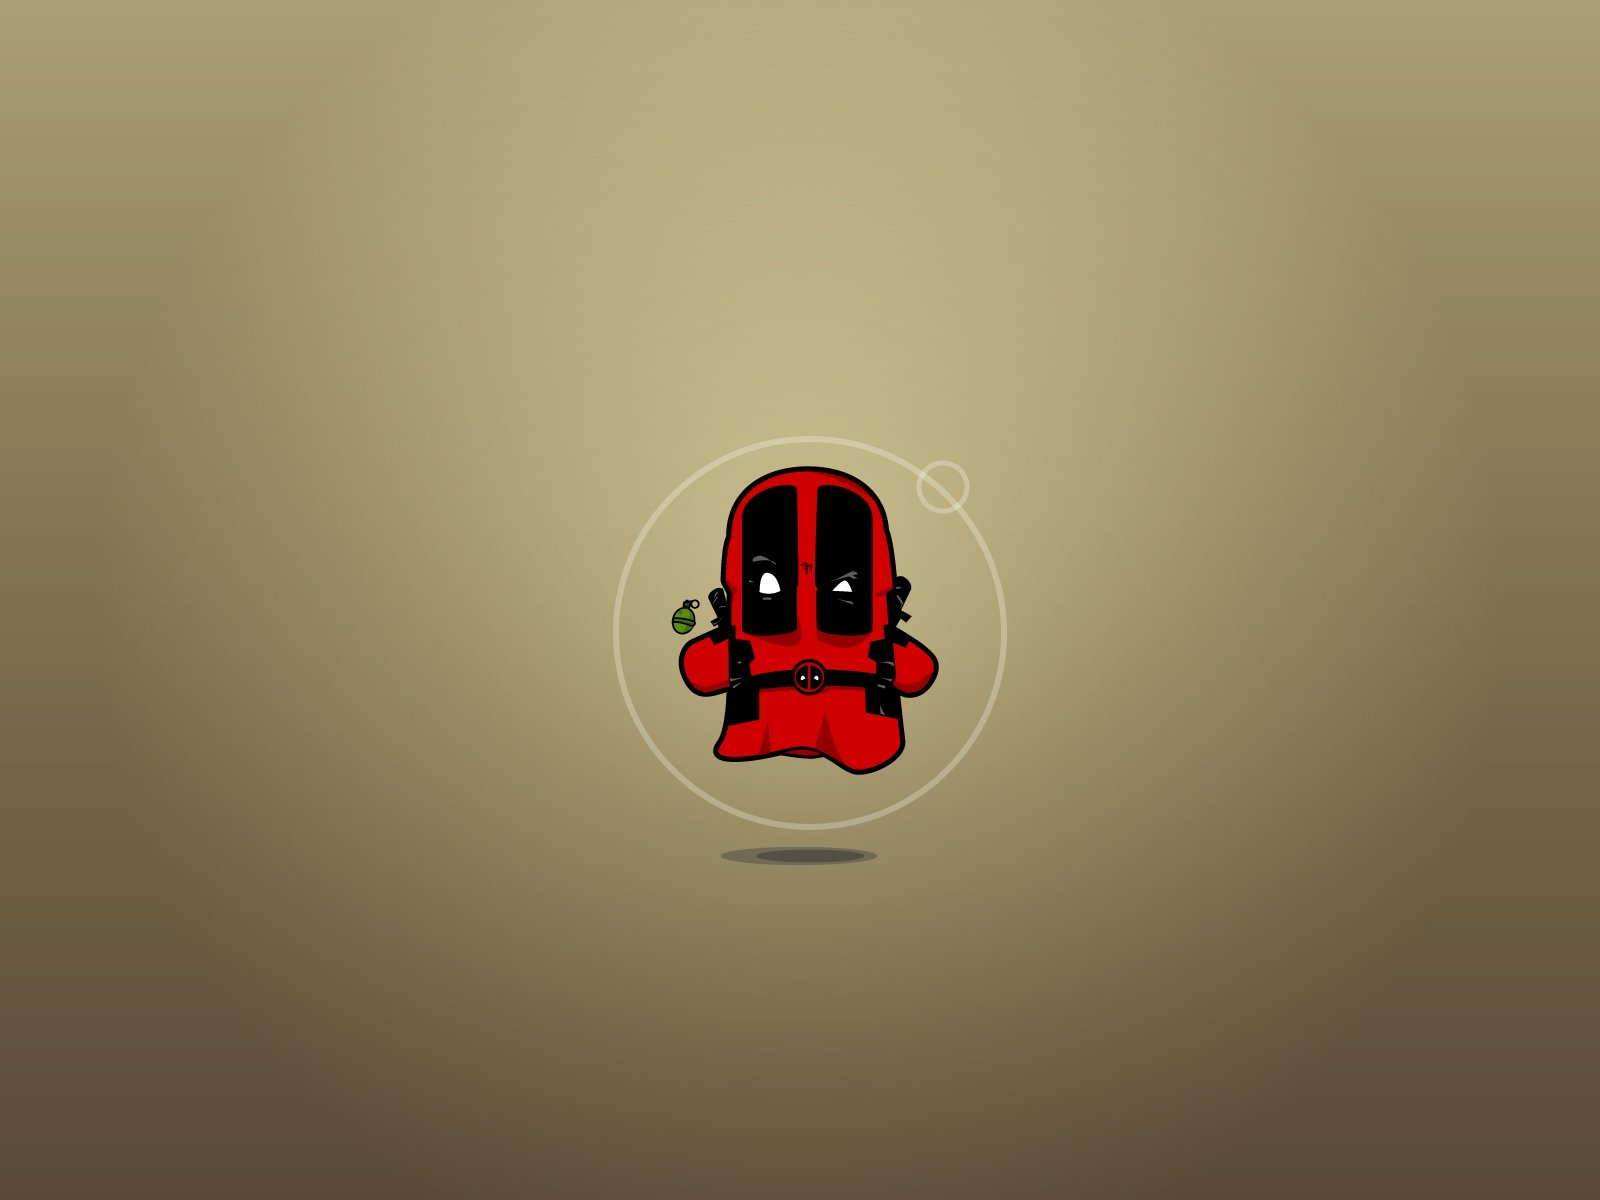 Comics - Deadpool  Comic Comics Marvel Comics Merc with a Mouth Wallpaper